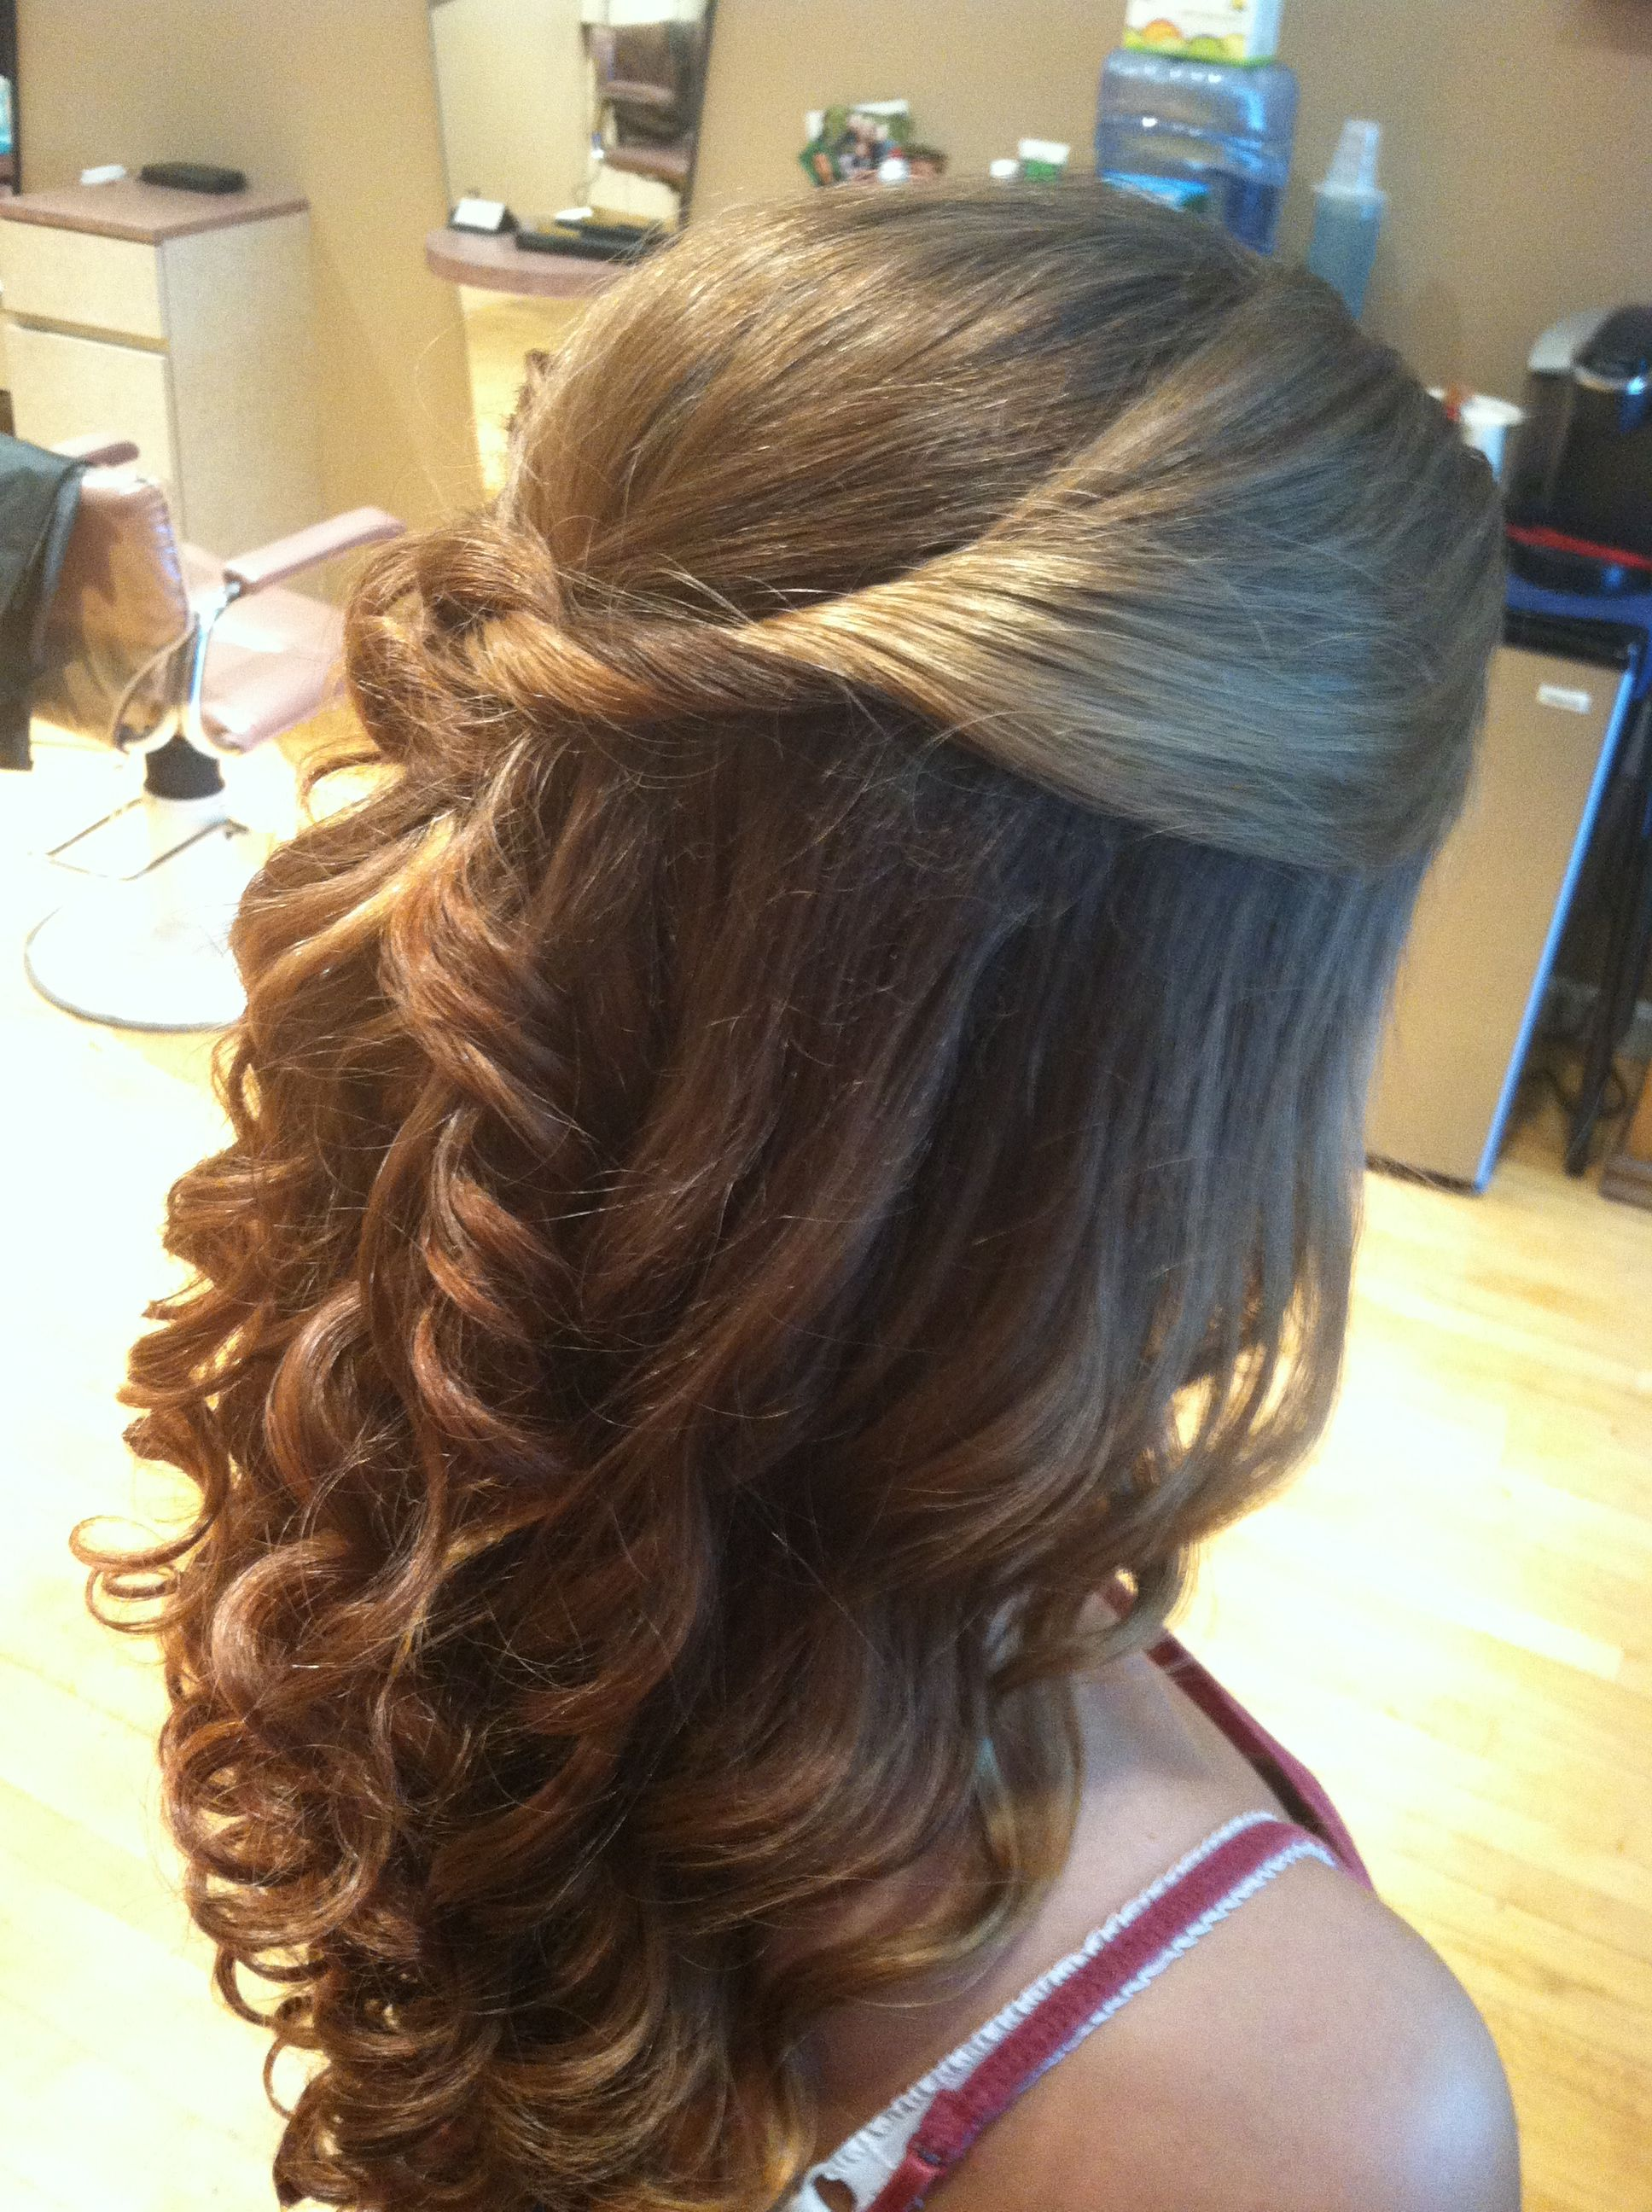 curled with a wand, knotted half up with cascading spiral